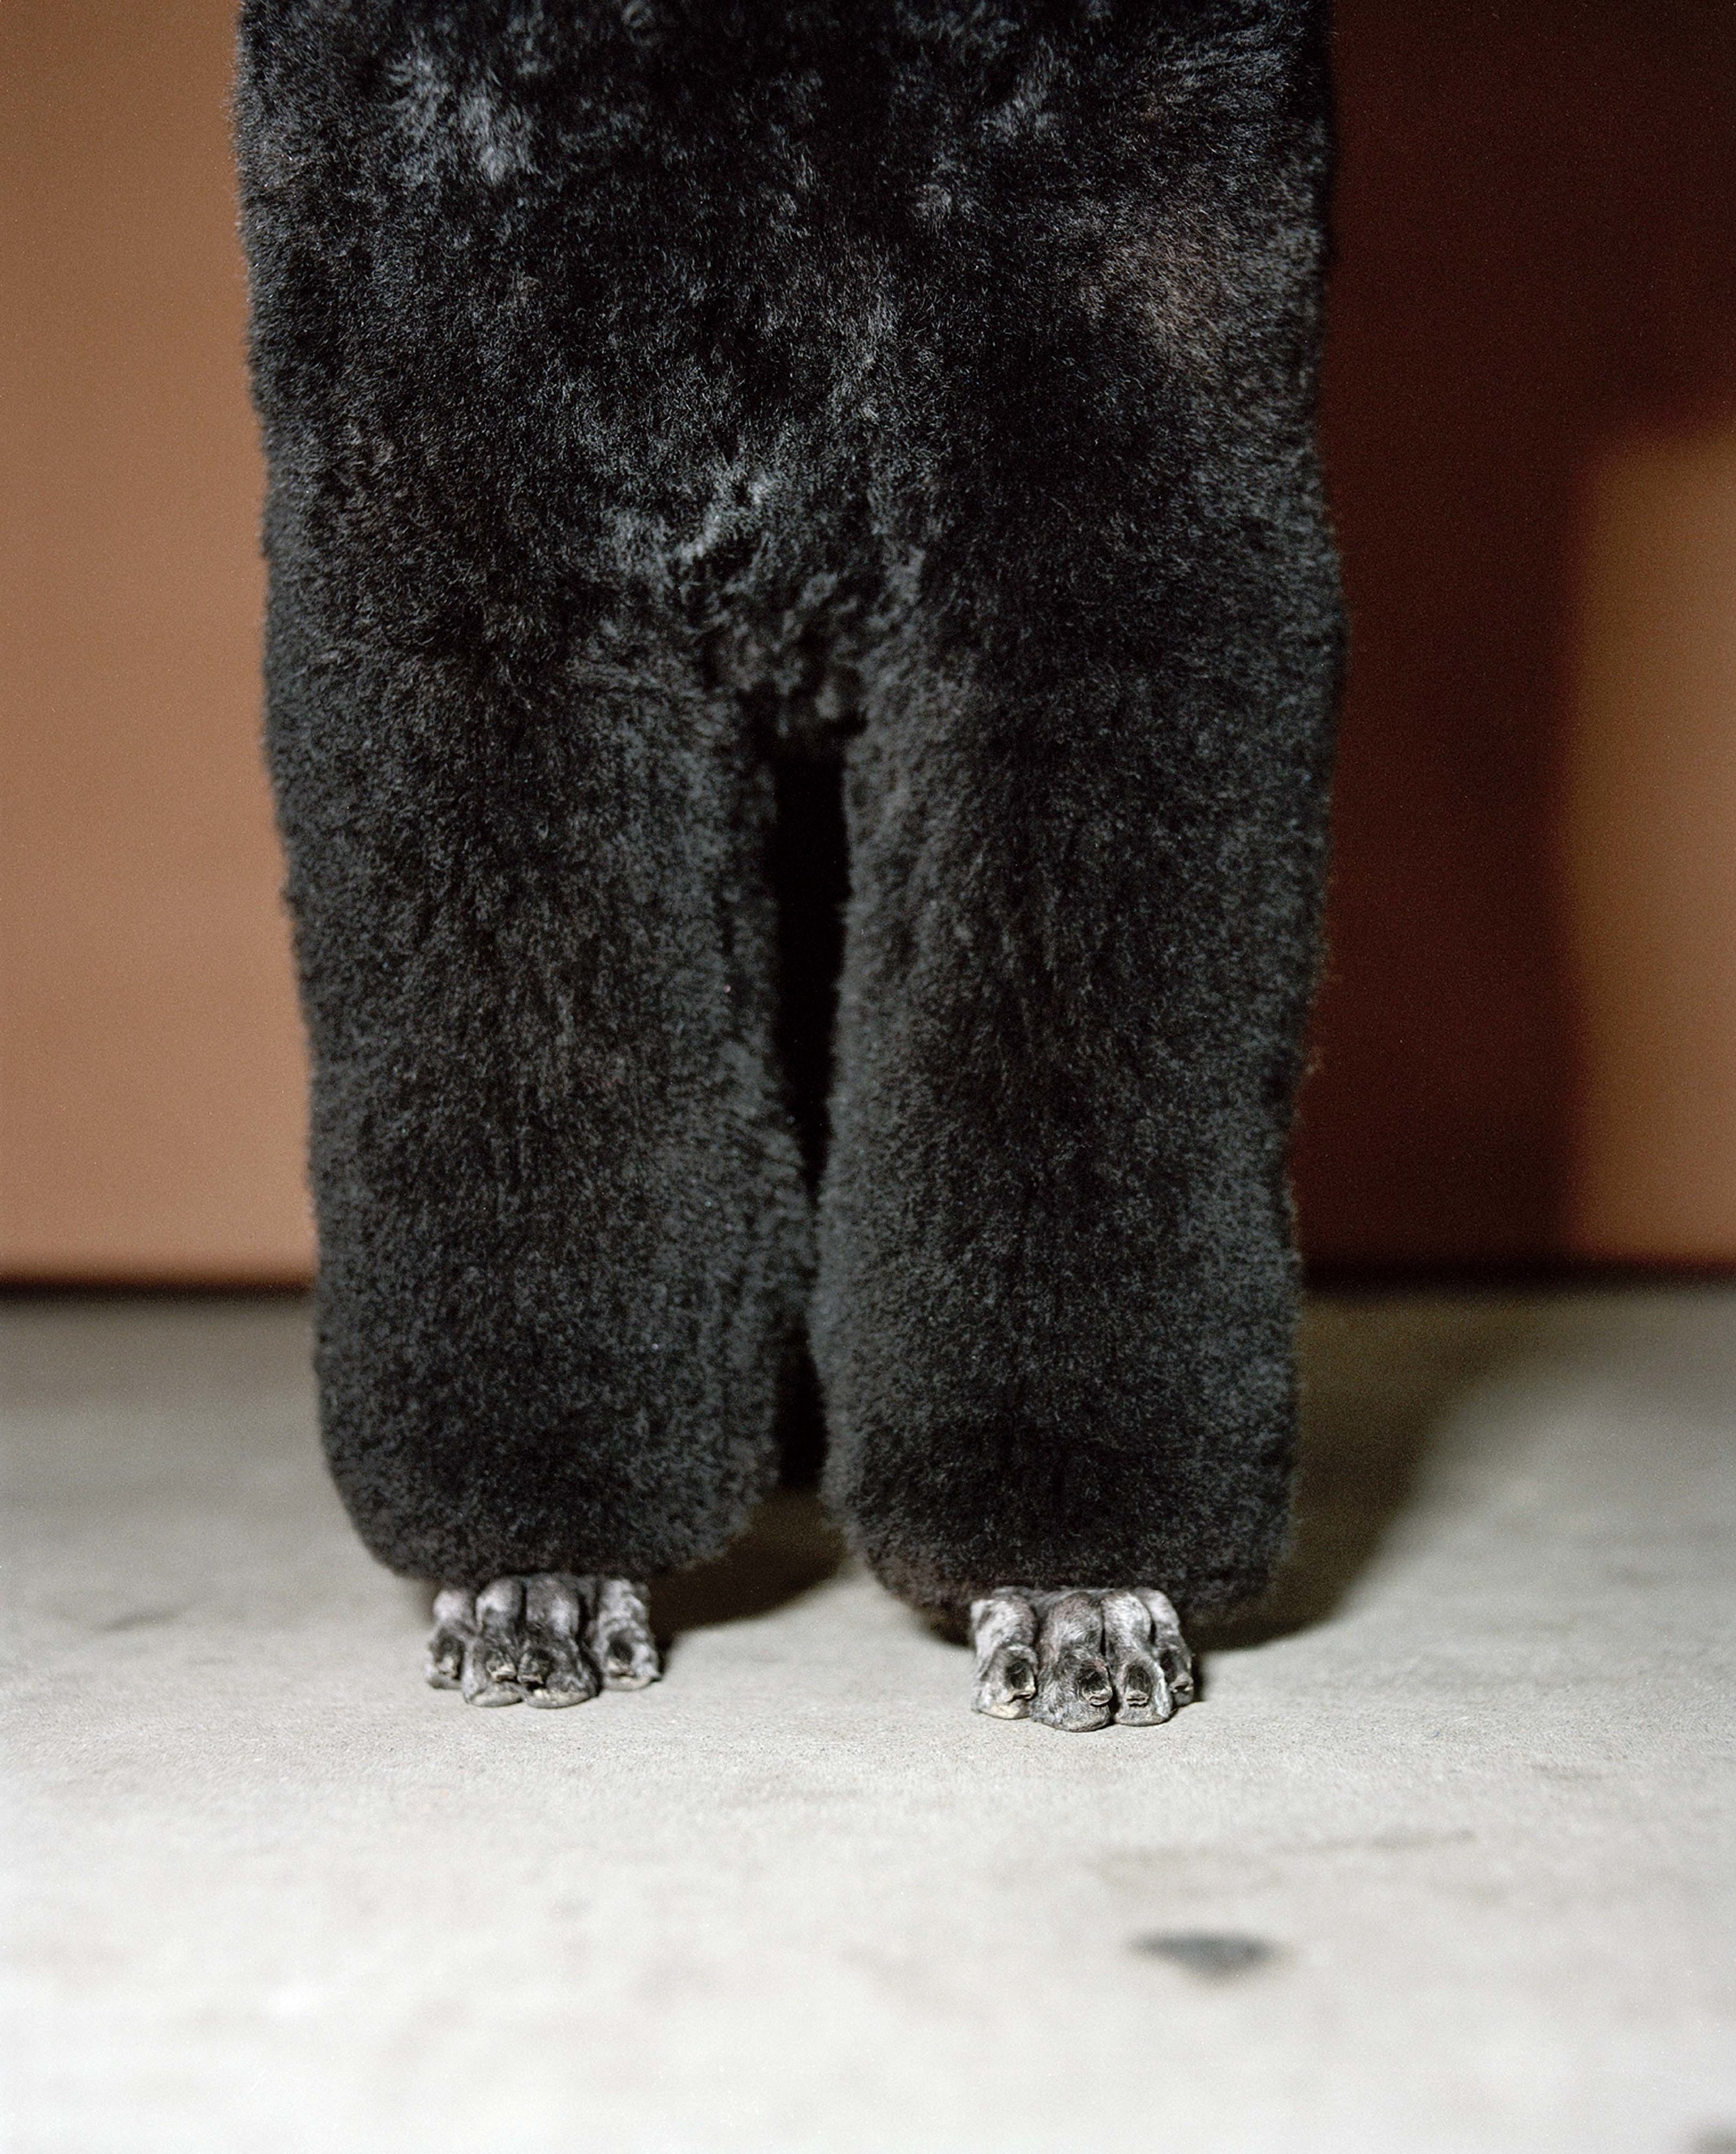 legs of a poodle